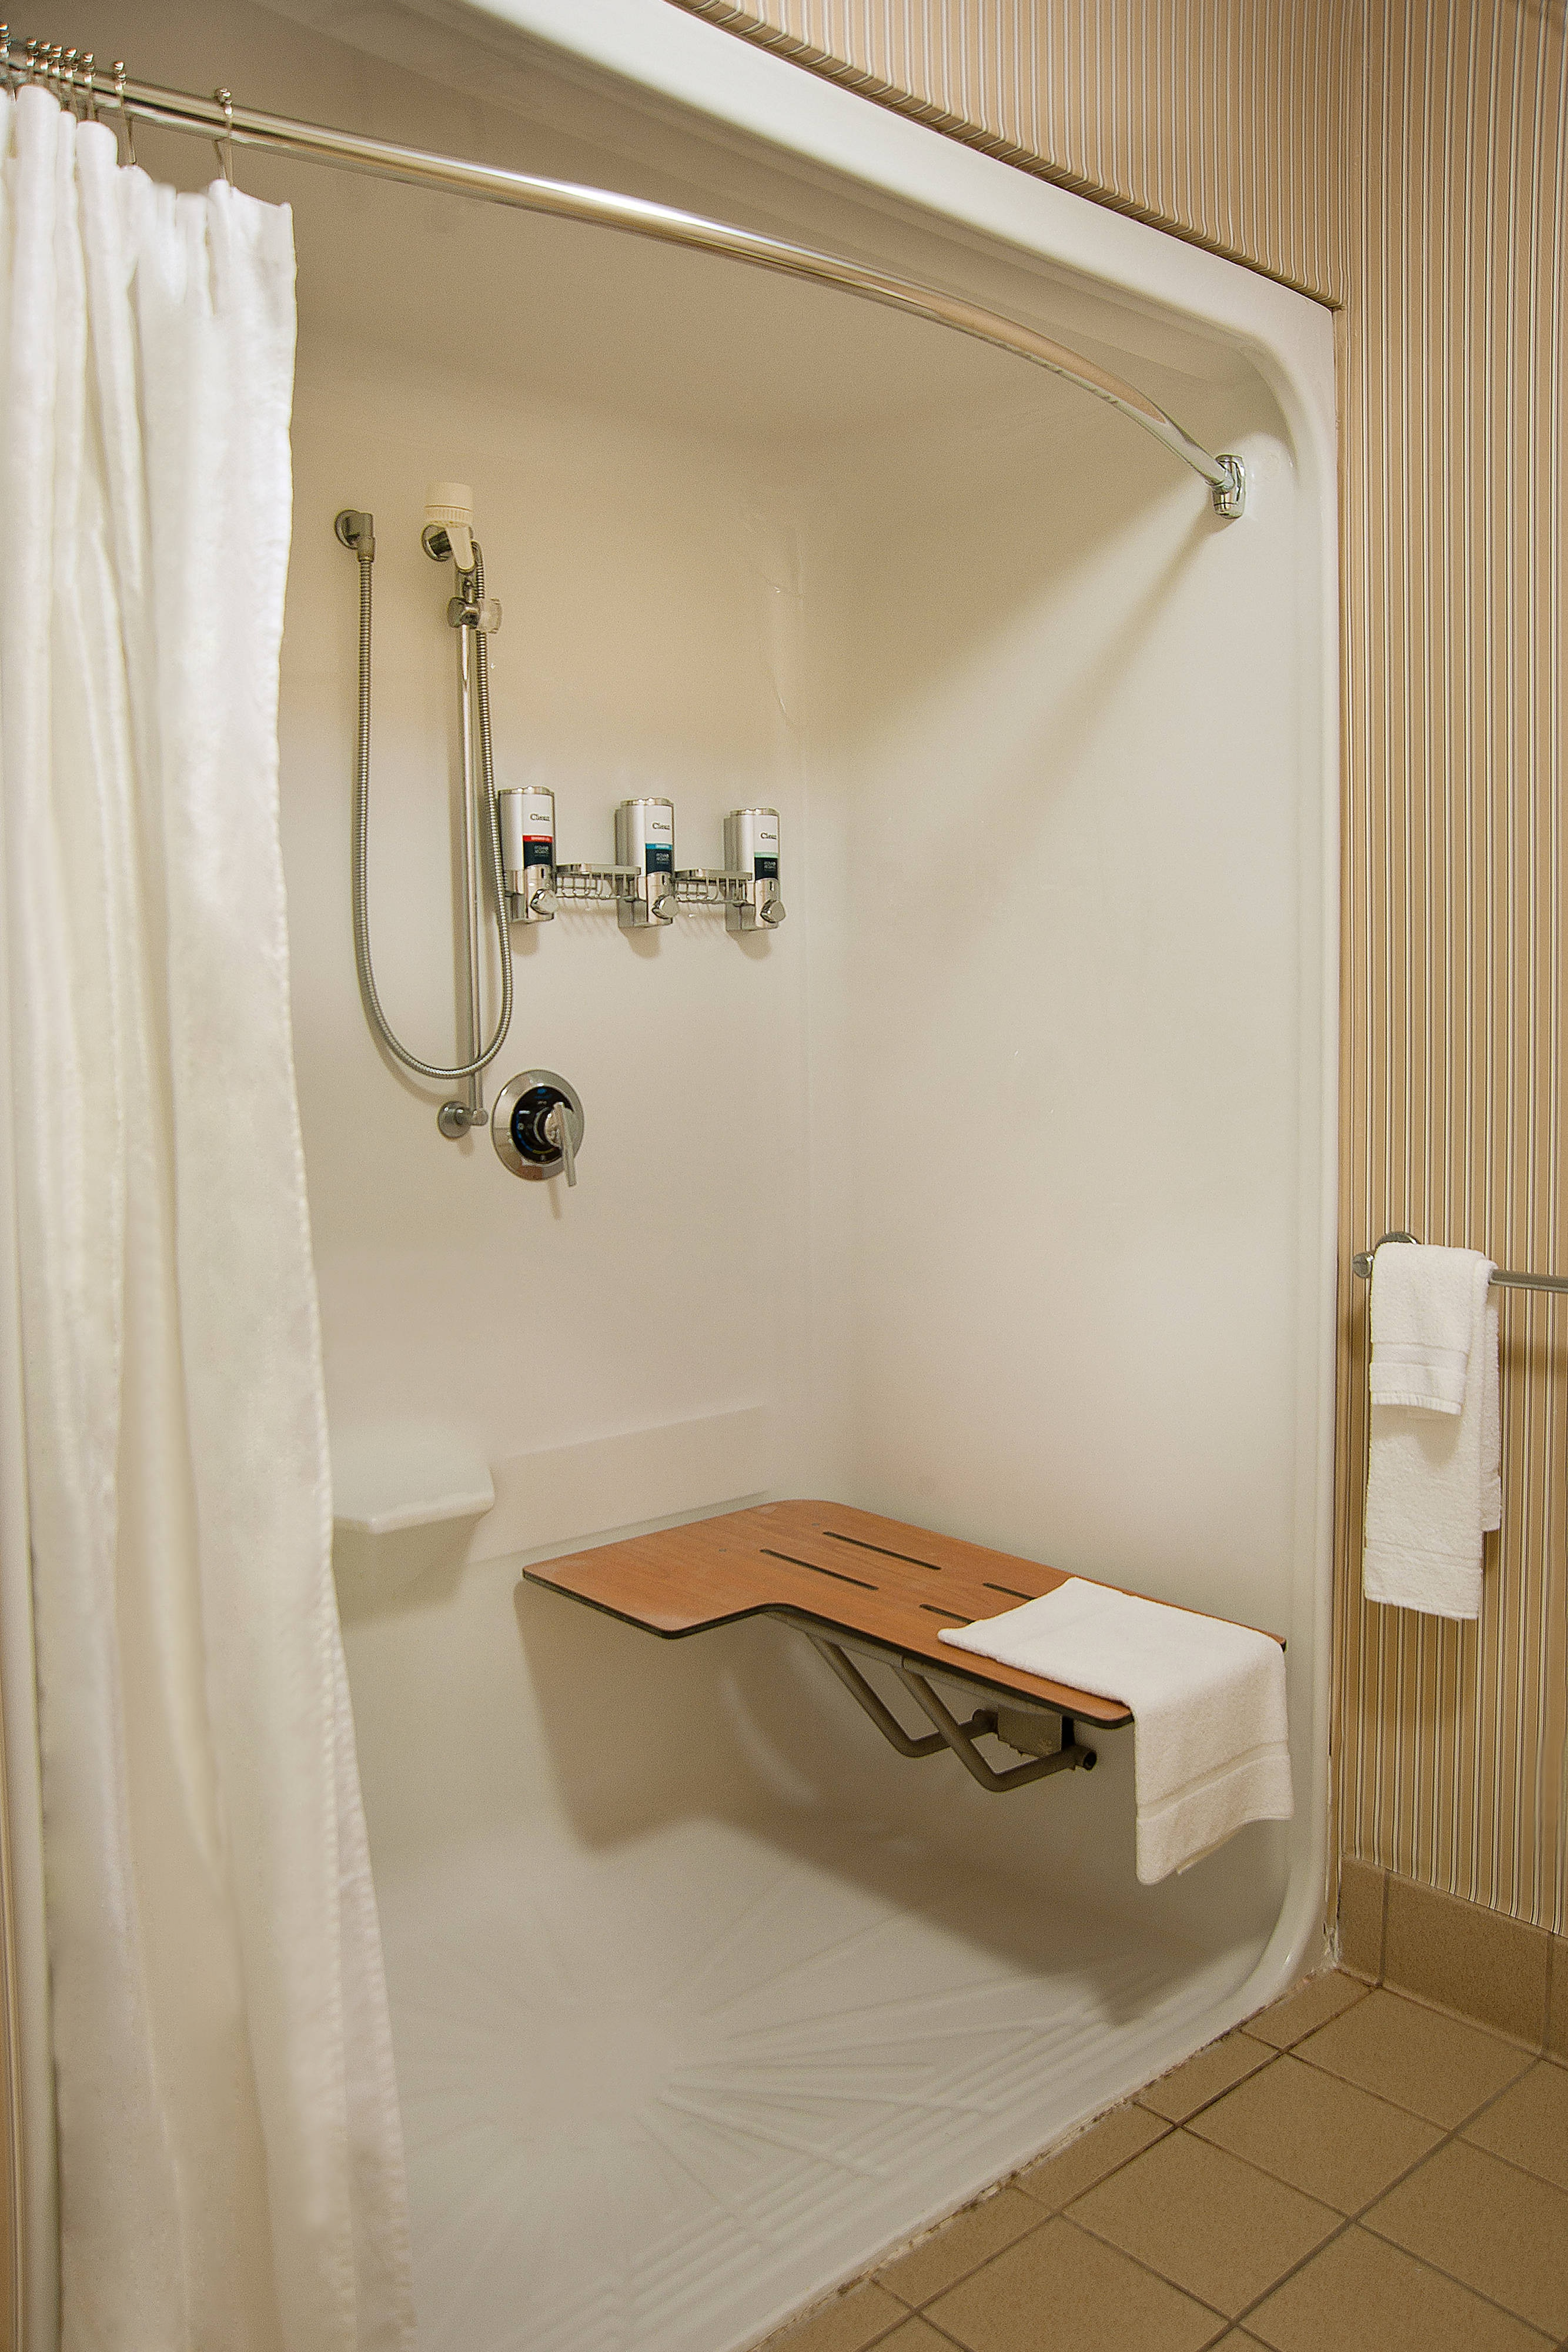 Accessible Room Roll in Shower